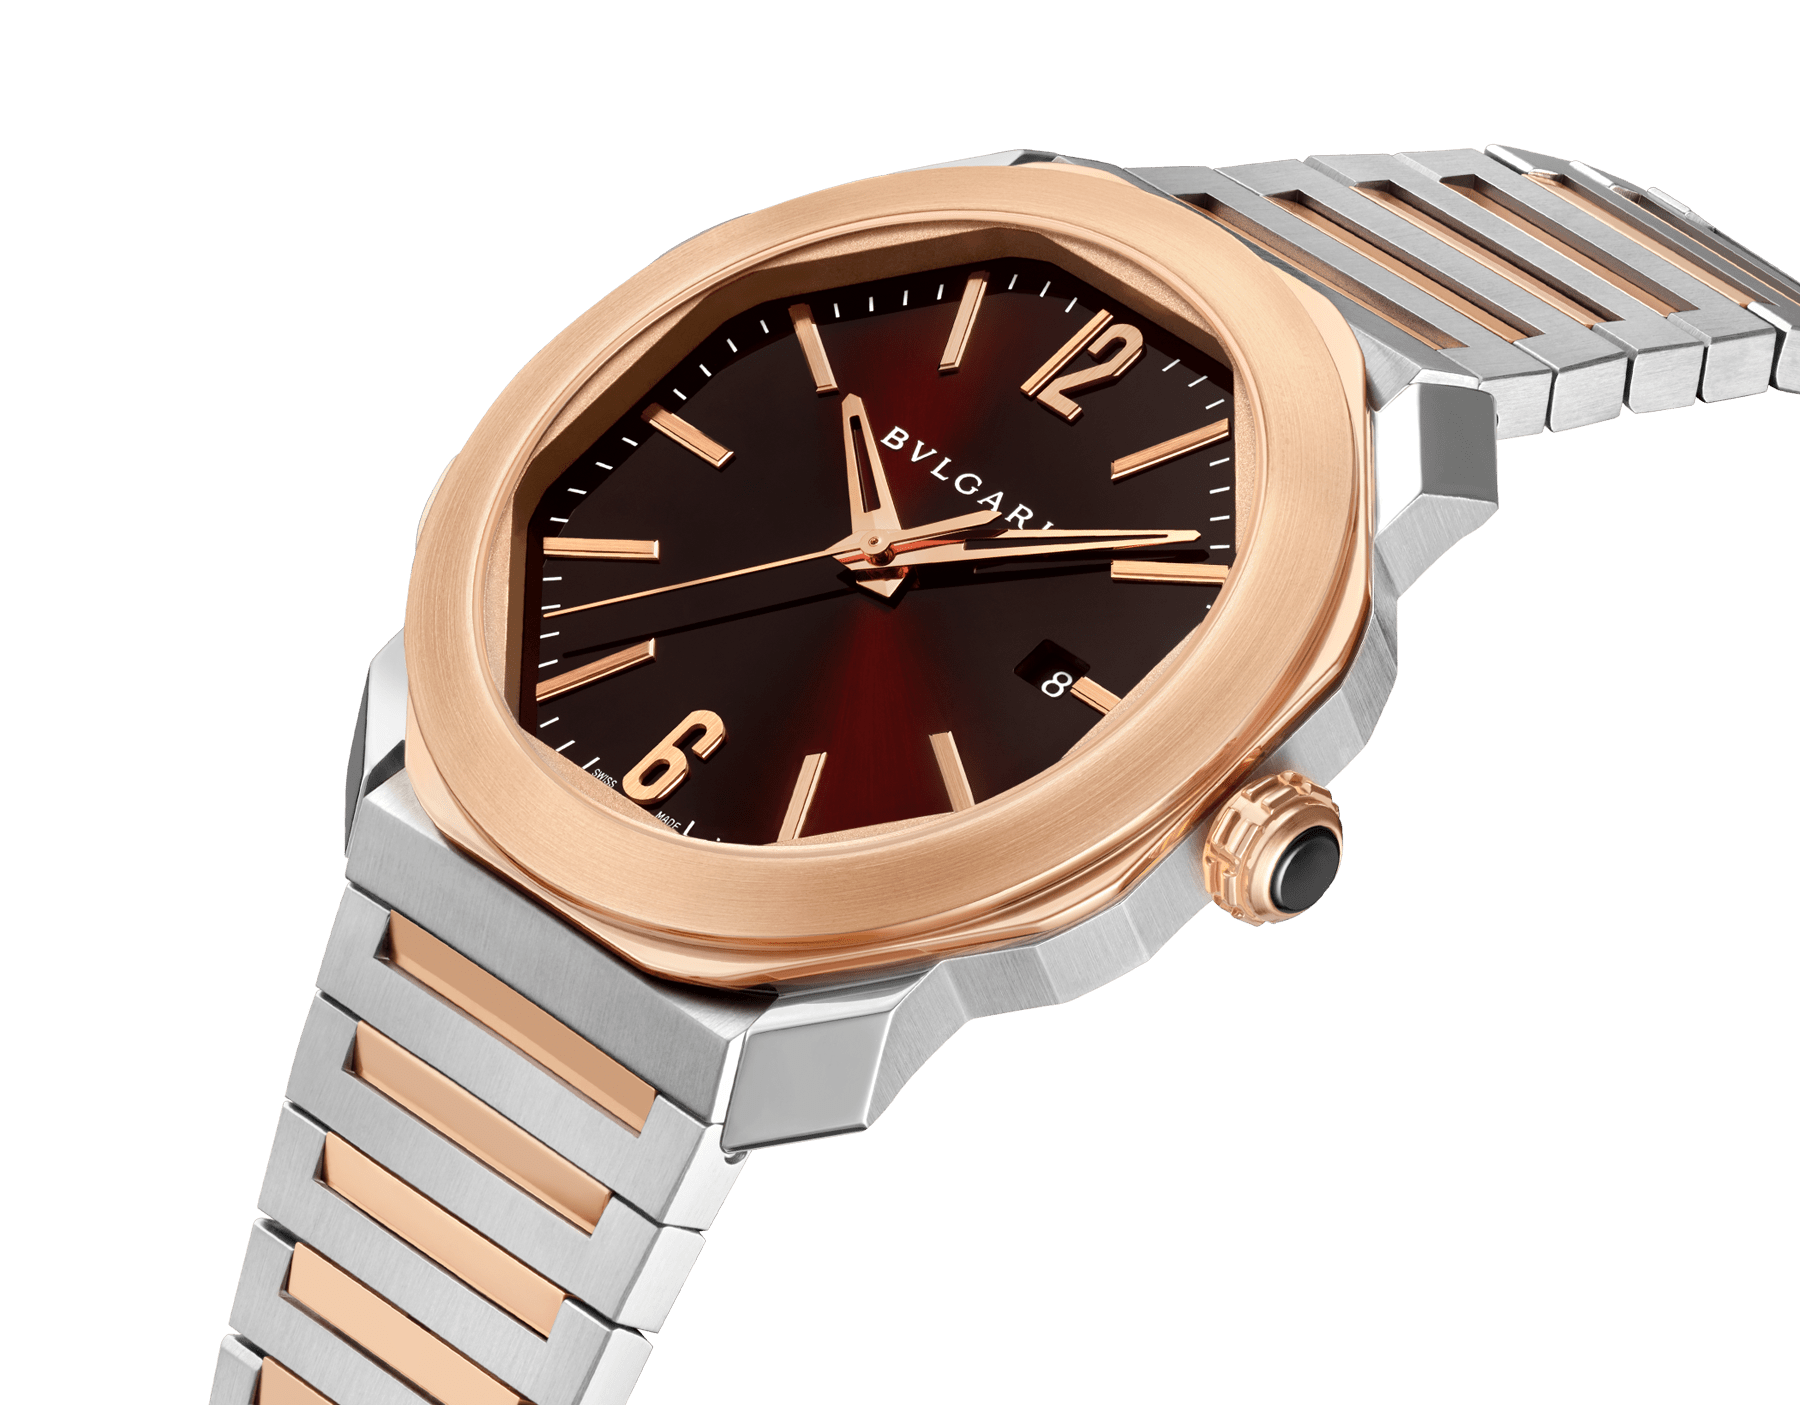 Octo Roma watch with mechanical manufacture movement, automatic winding, 18 kt rose gold and stainless steel case and bracelet, brown dial. 102854 image 2